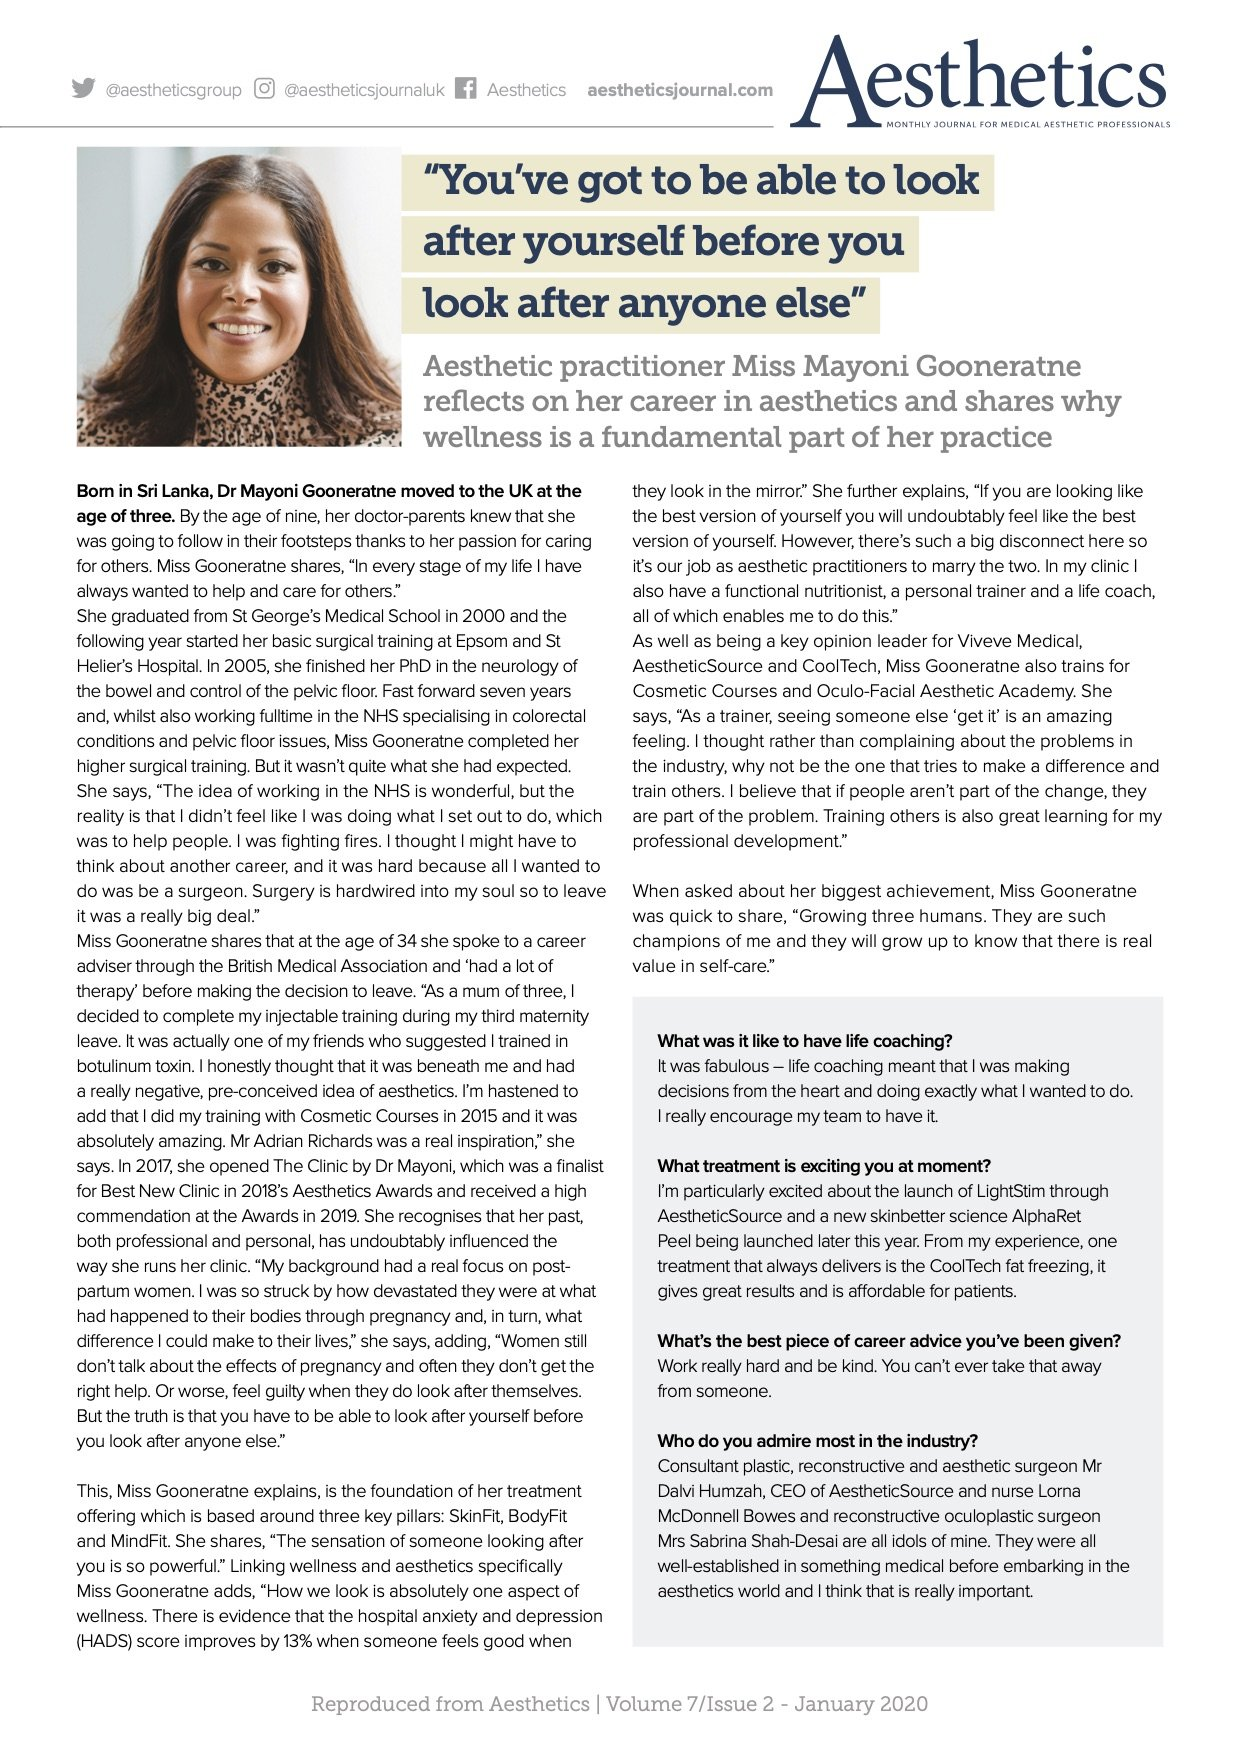 Dr. Mayoni profiled in Aesthetics Journal Magazine The Clinic by Dr Mayoni